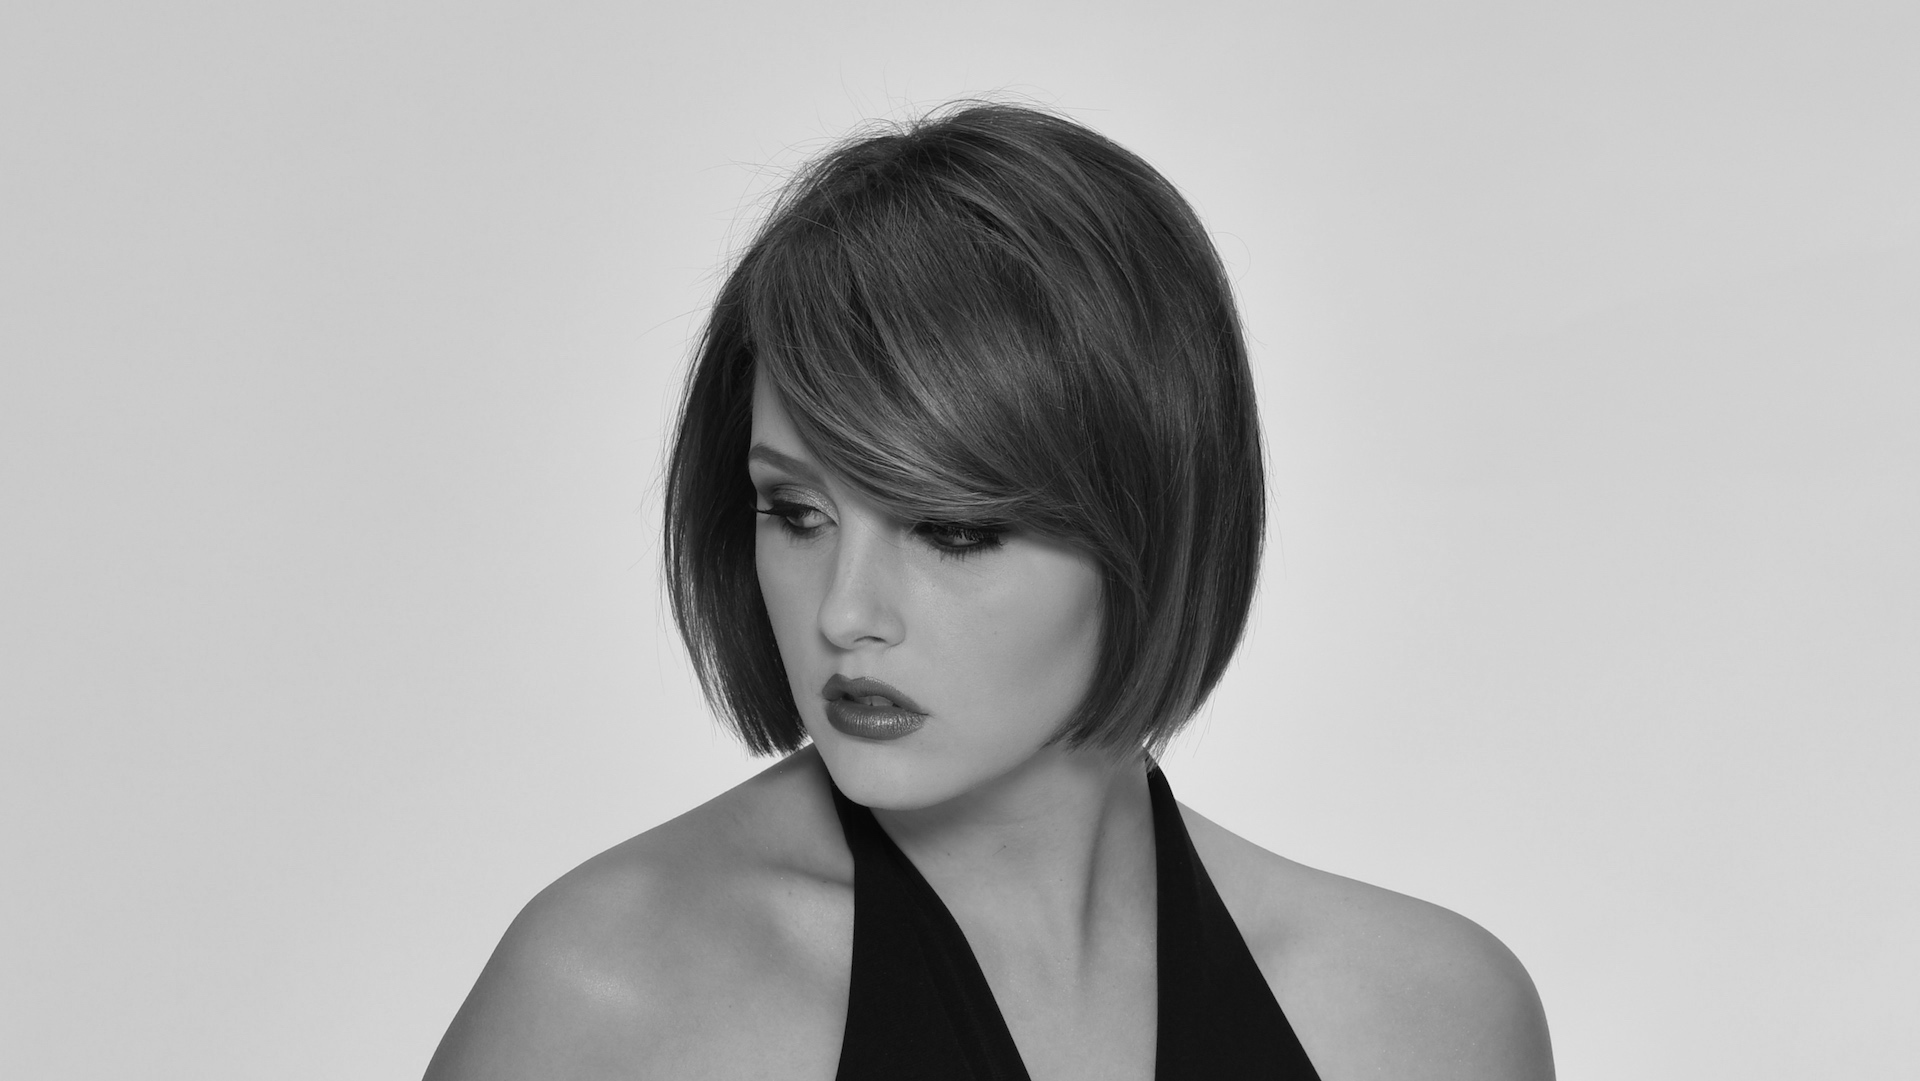 Best salon in dallas for color and haircut dallas best for Aalam salon prices